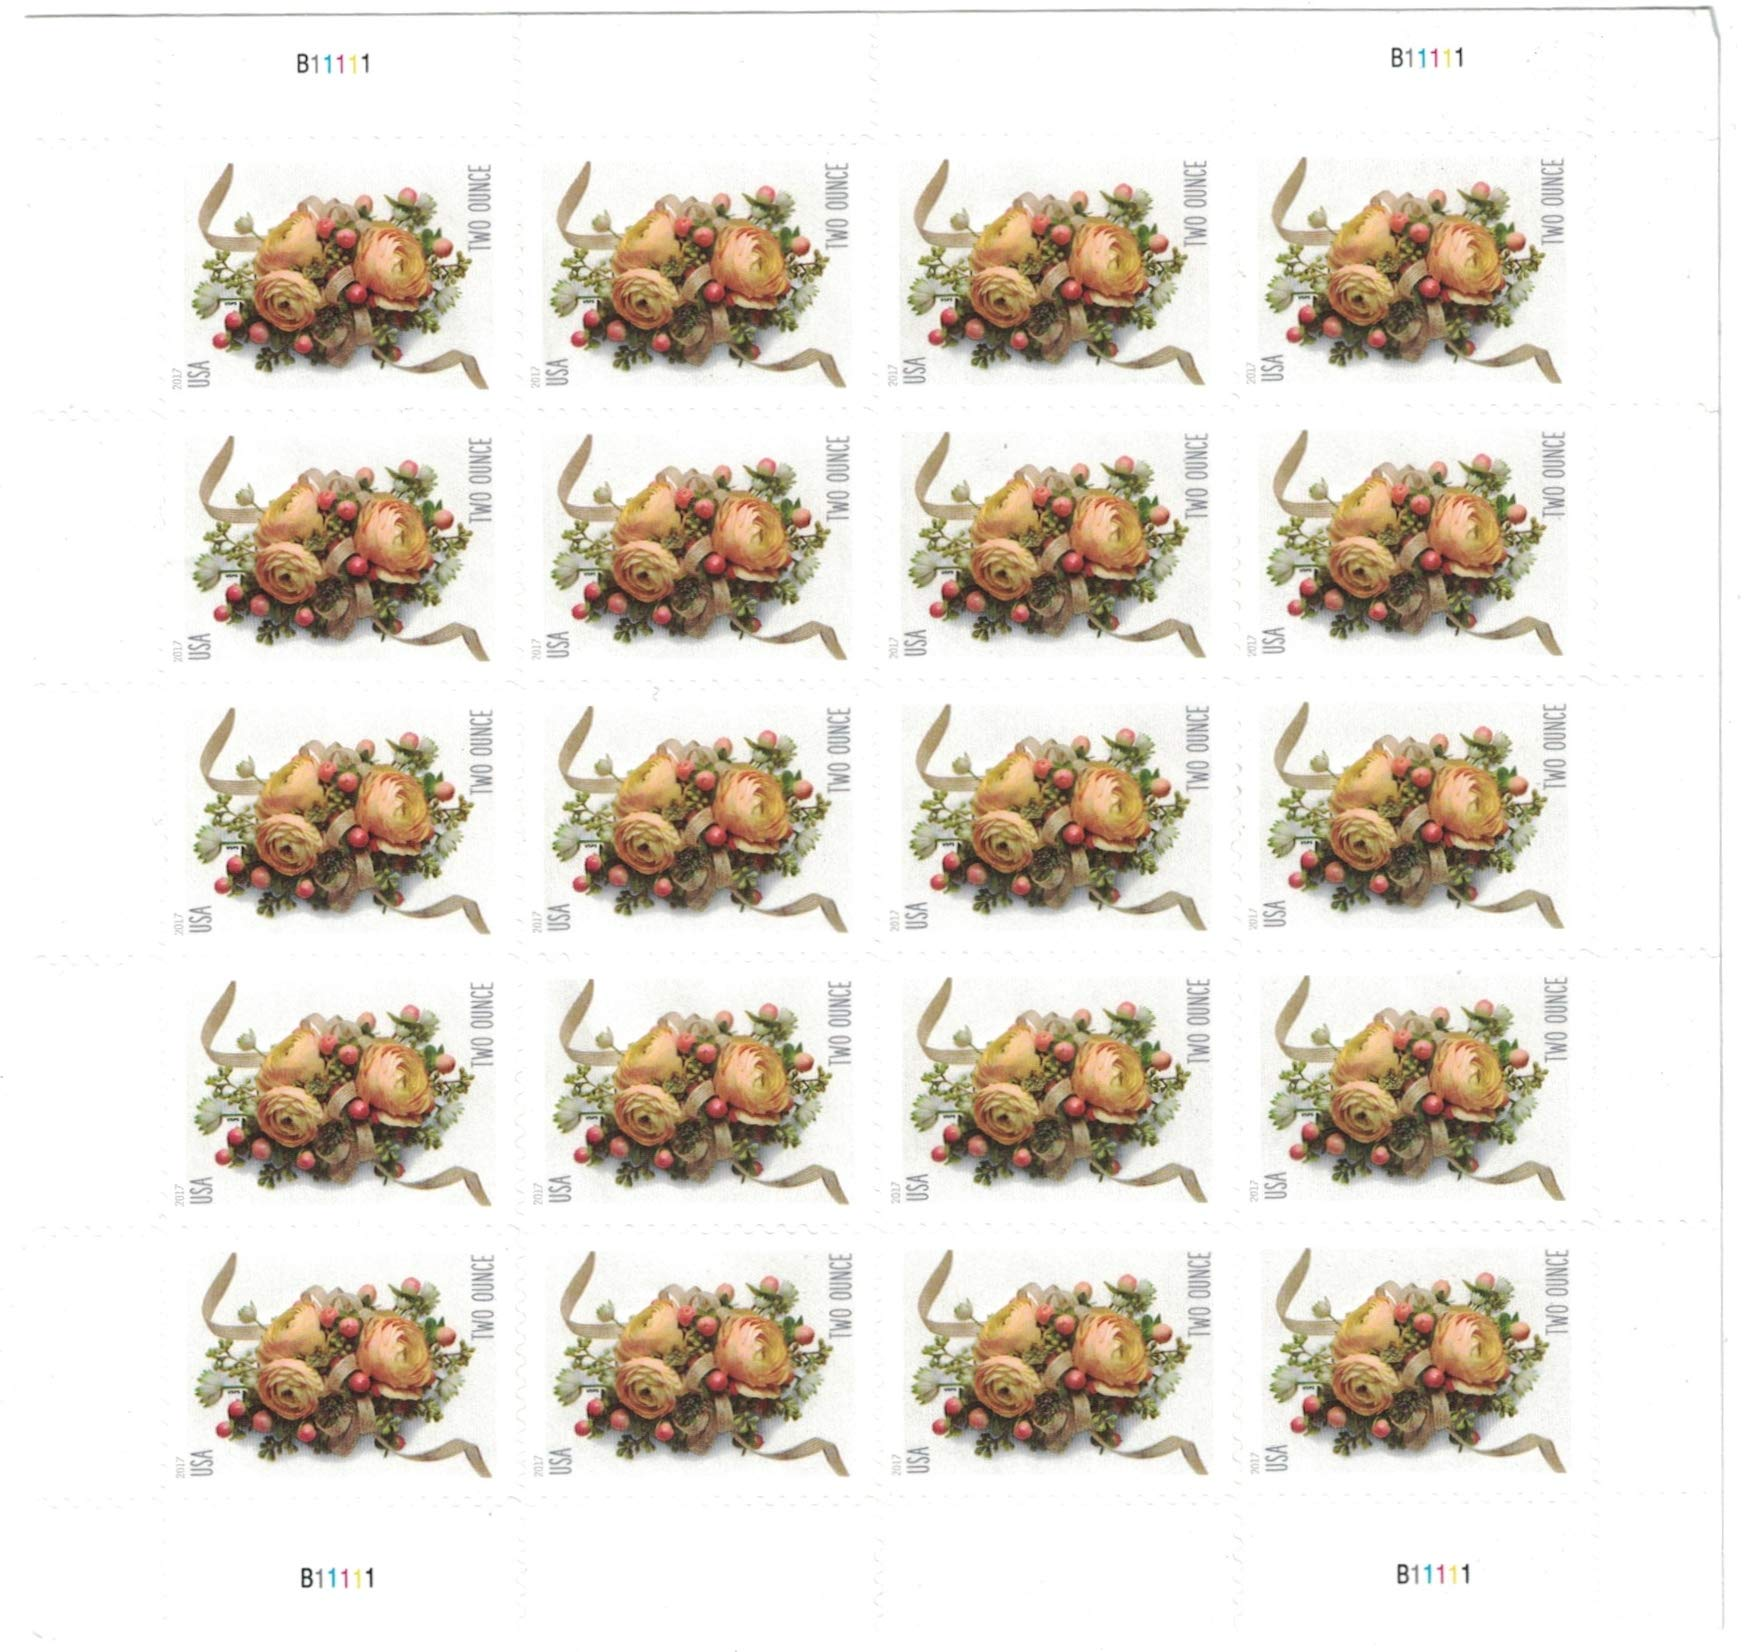 USPS Two-Ounce Forever Stamps Sheet of 20 - New Stamp Issued 2017